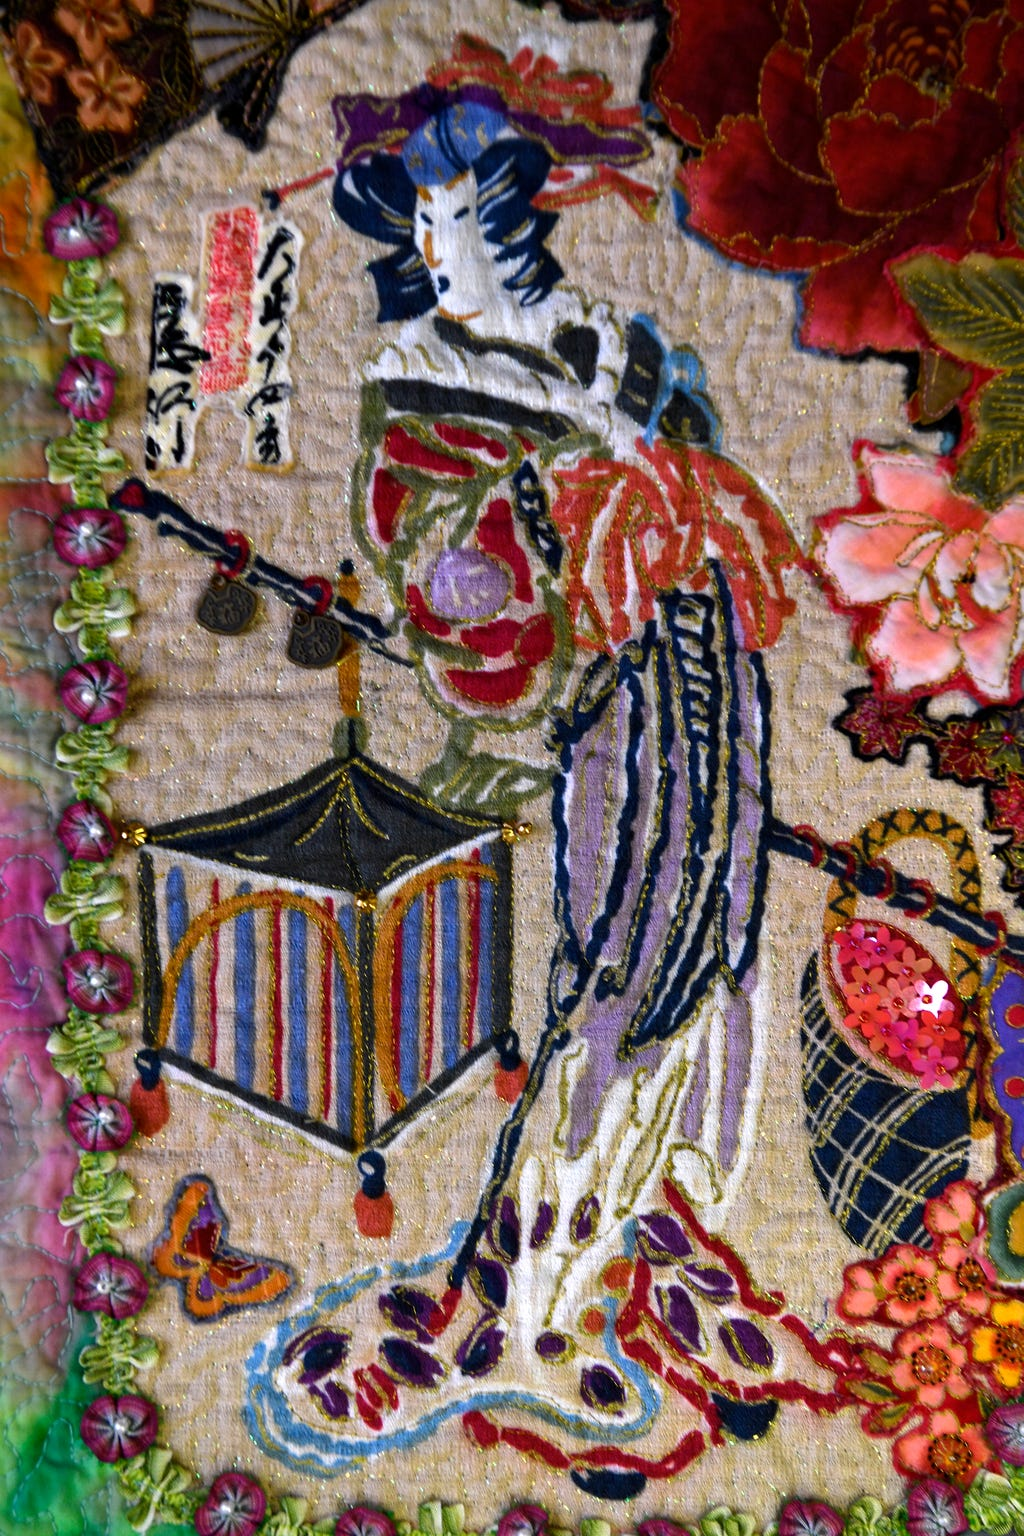 A detail of a quilt called Asian Garden made in 2007-2008 by Judy Luther of Abilene. The Abilene Quilters Guild will have its Stars Over Abilene 25th Regional Quilt Show on June 7-8 at the Abilene Convention Center.